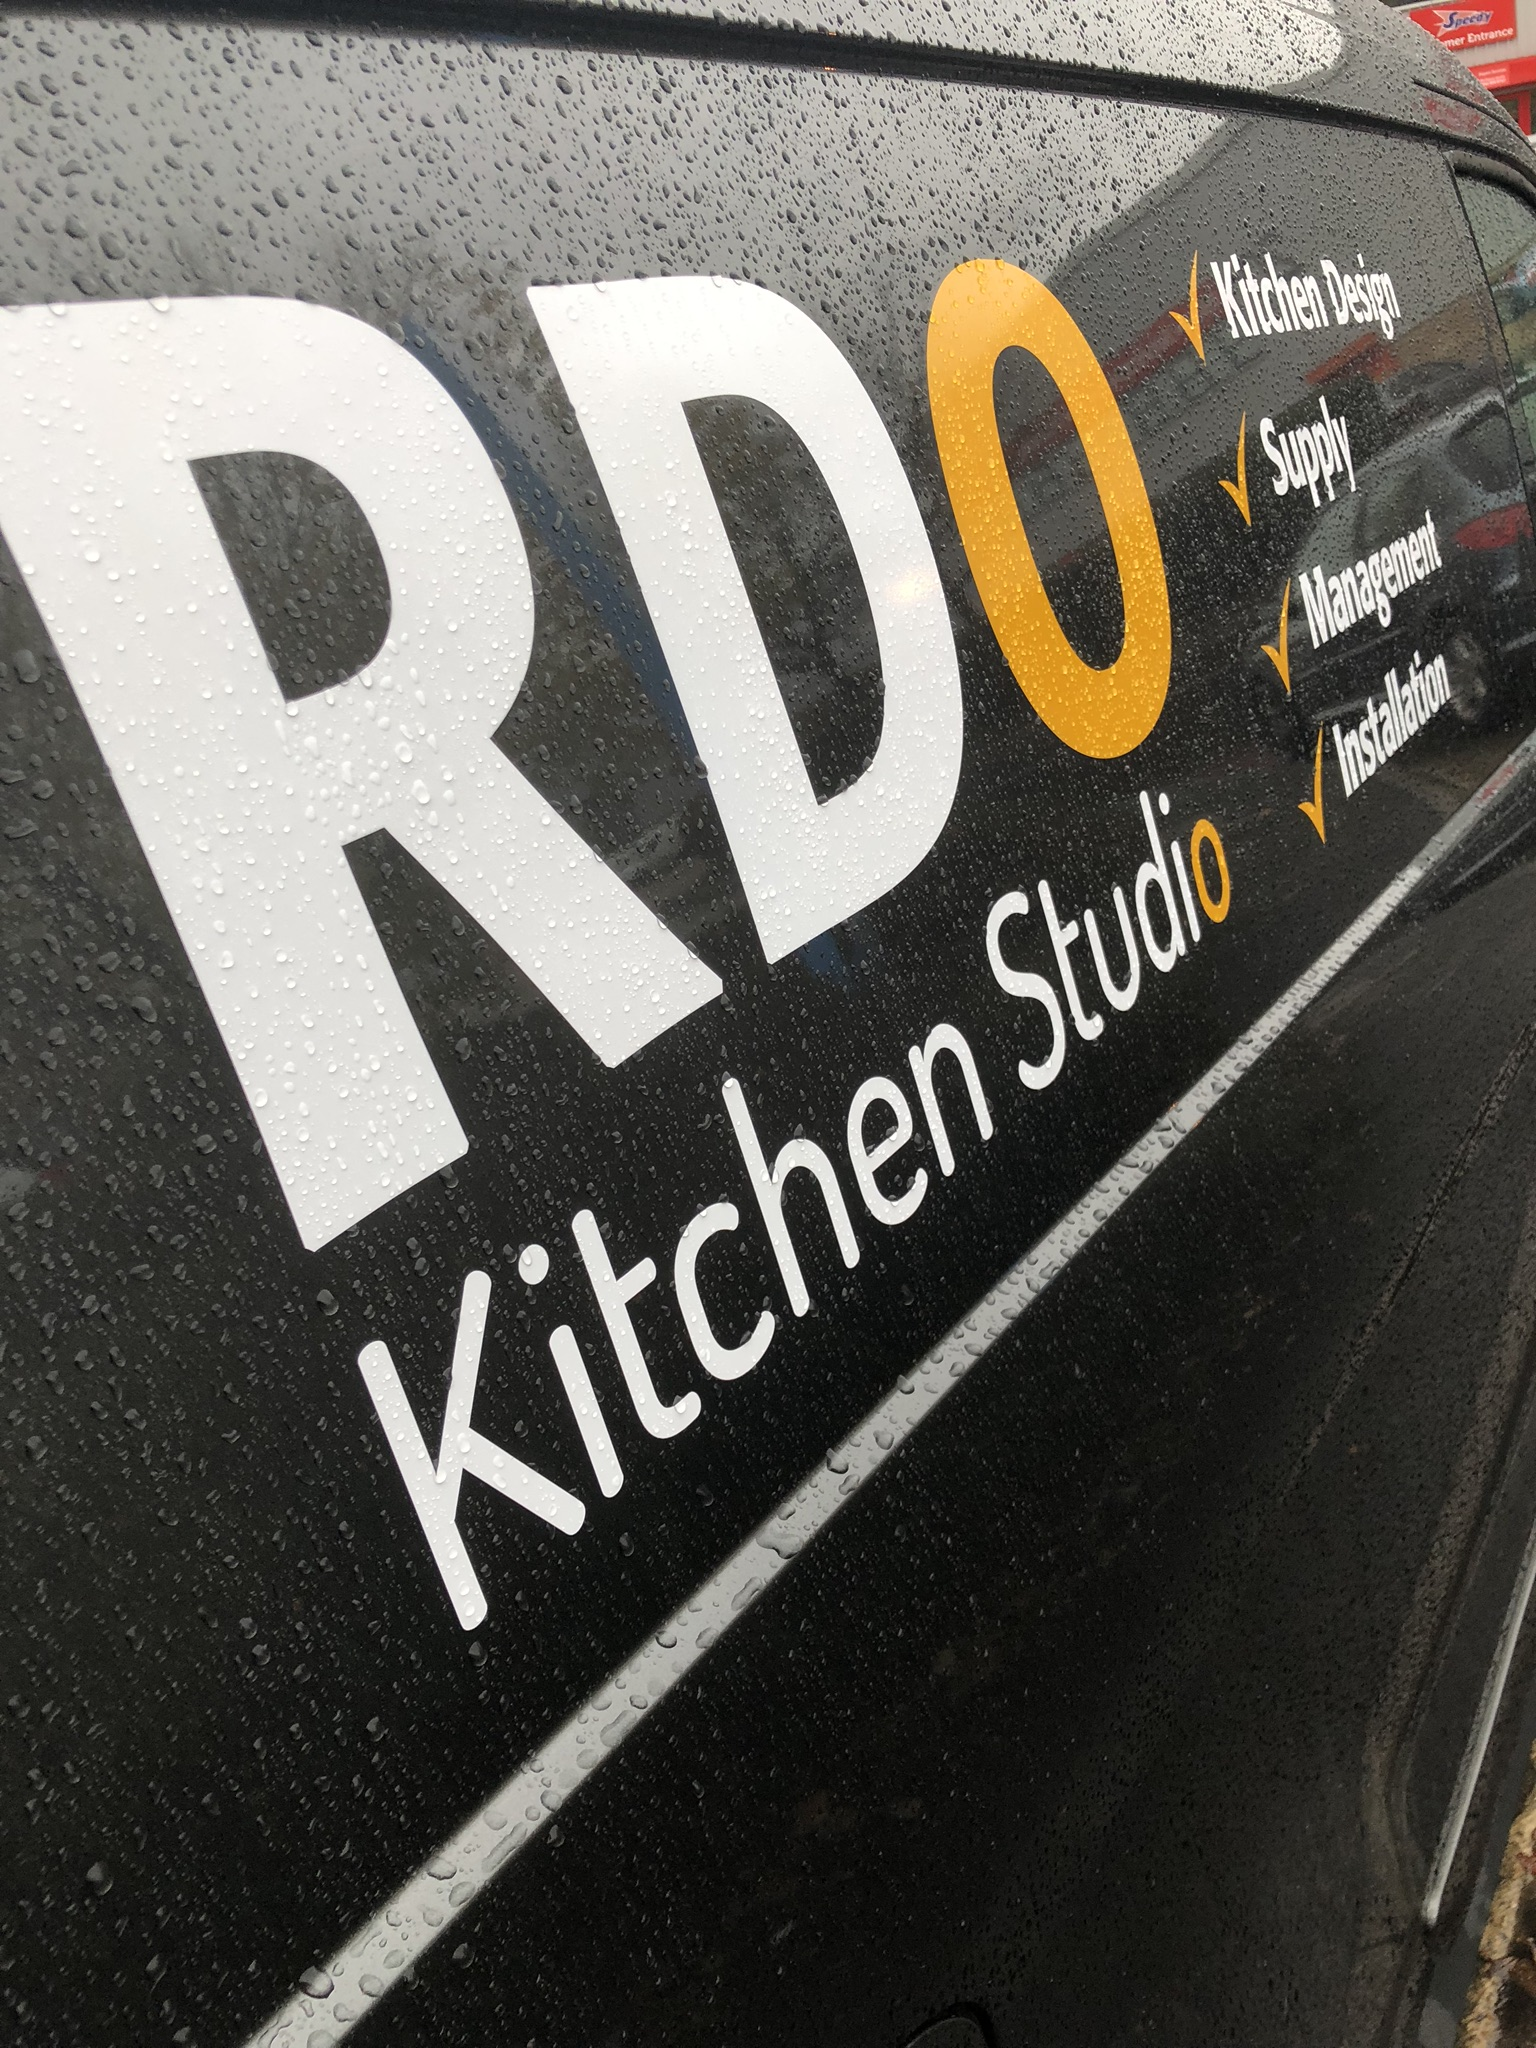 RDO KITCHEN STUDIO